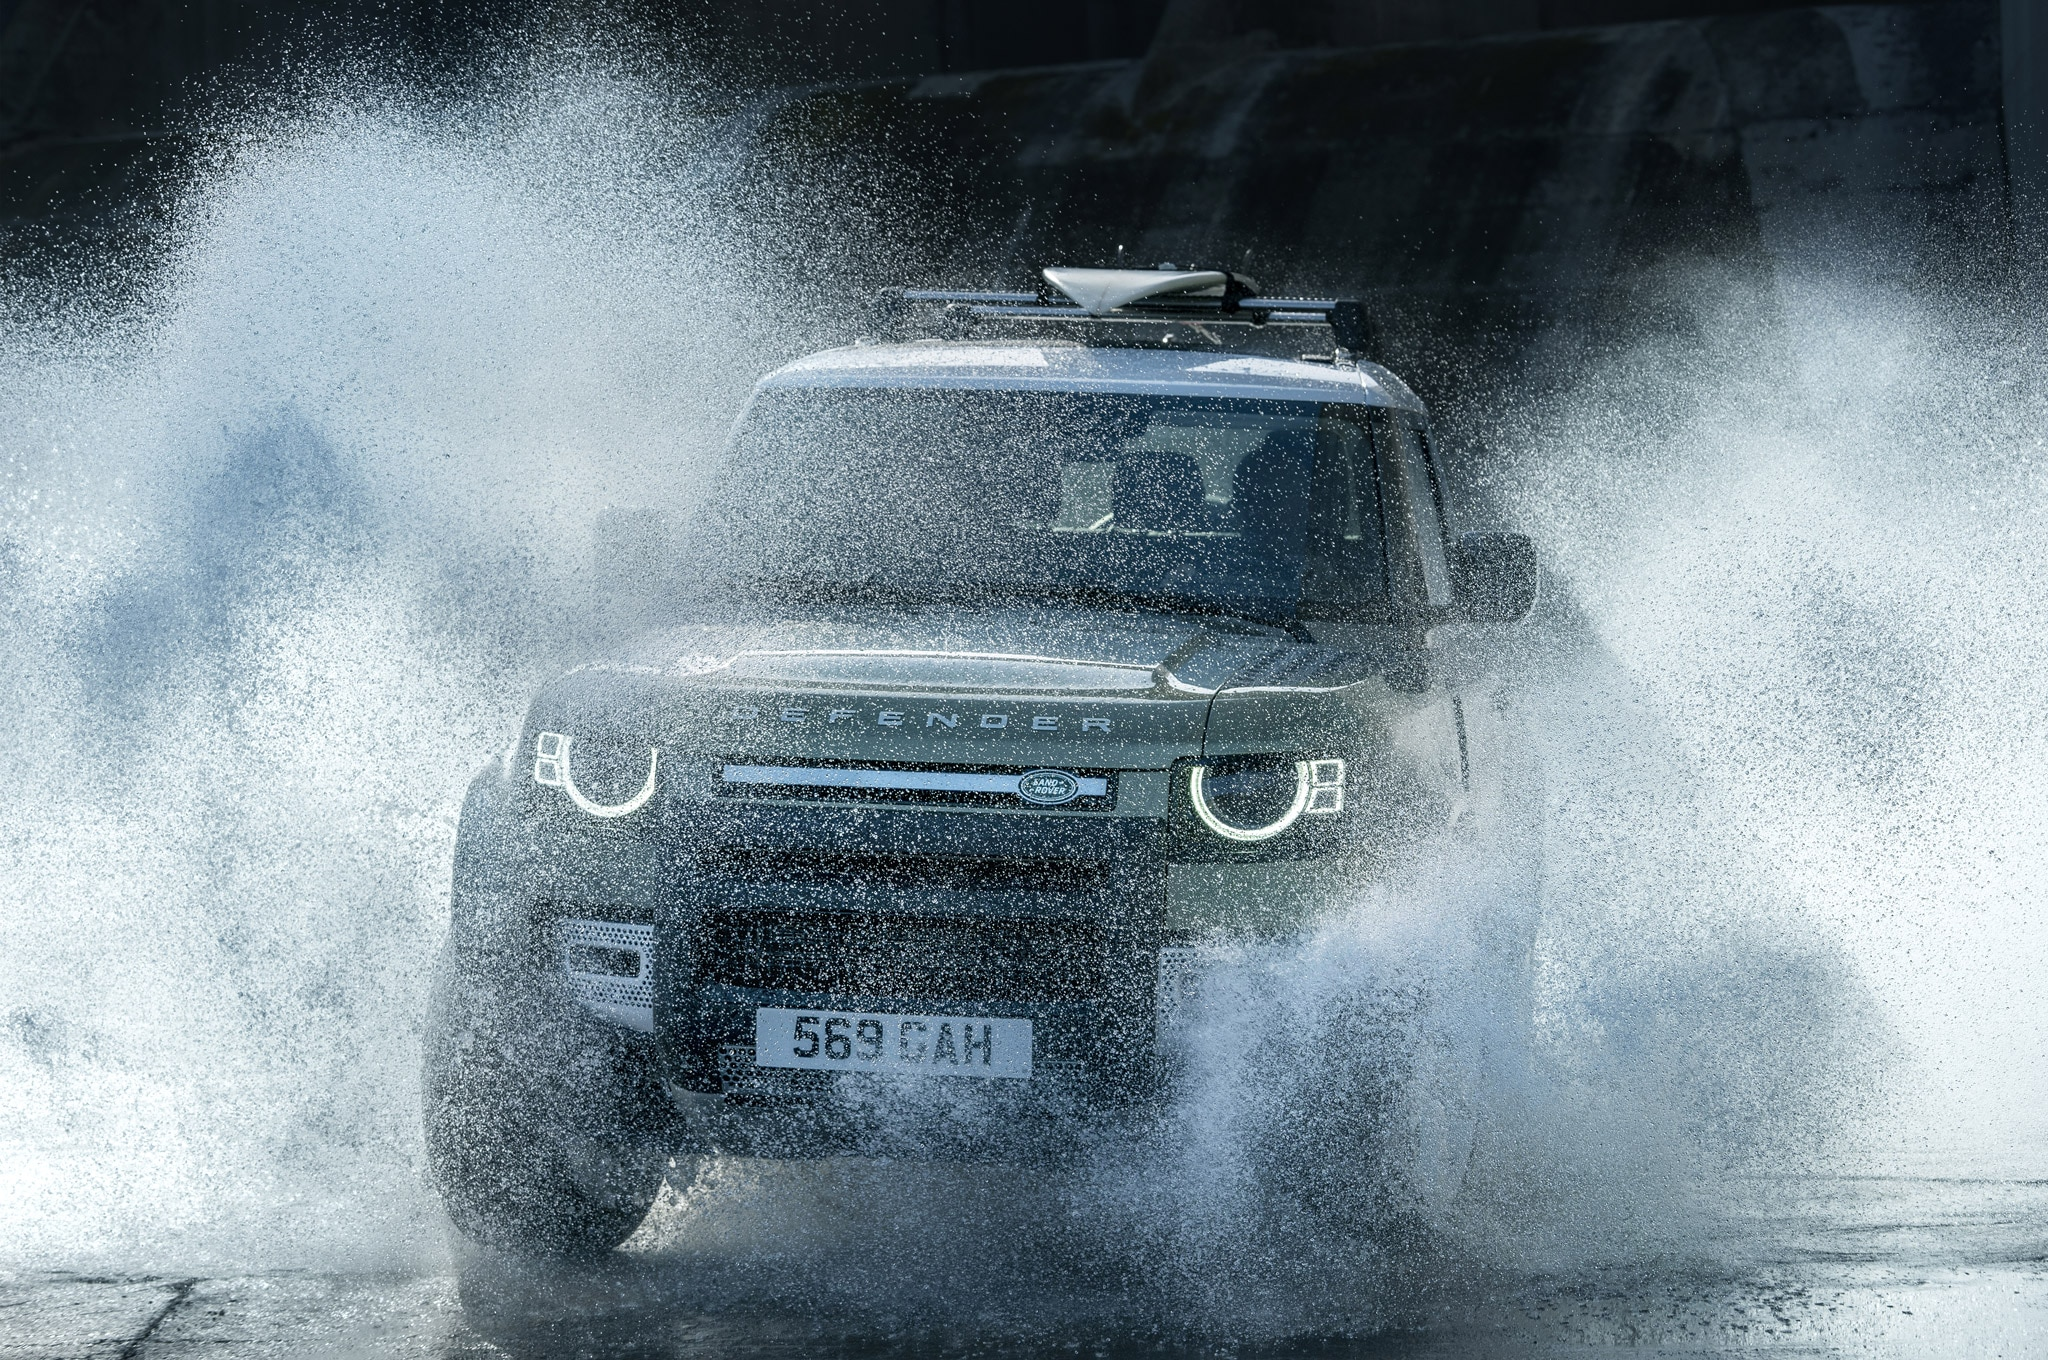 2020 land rover defender 90 off road water 02